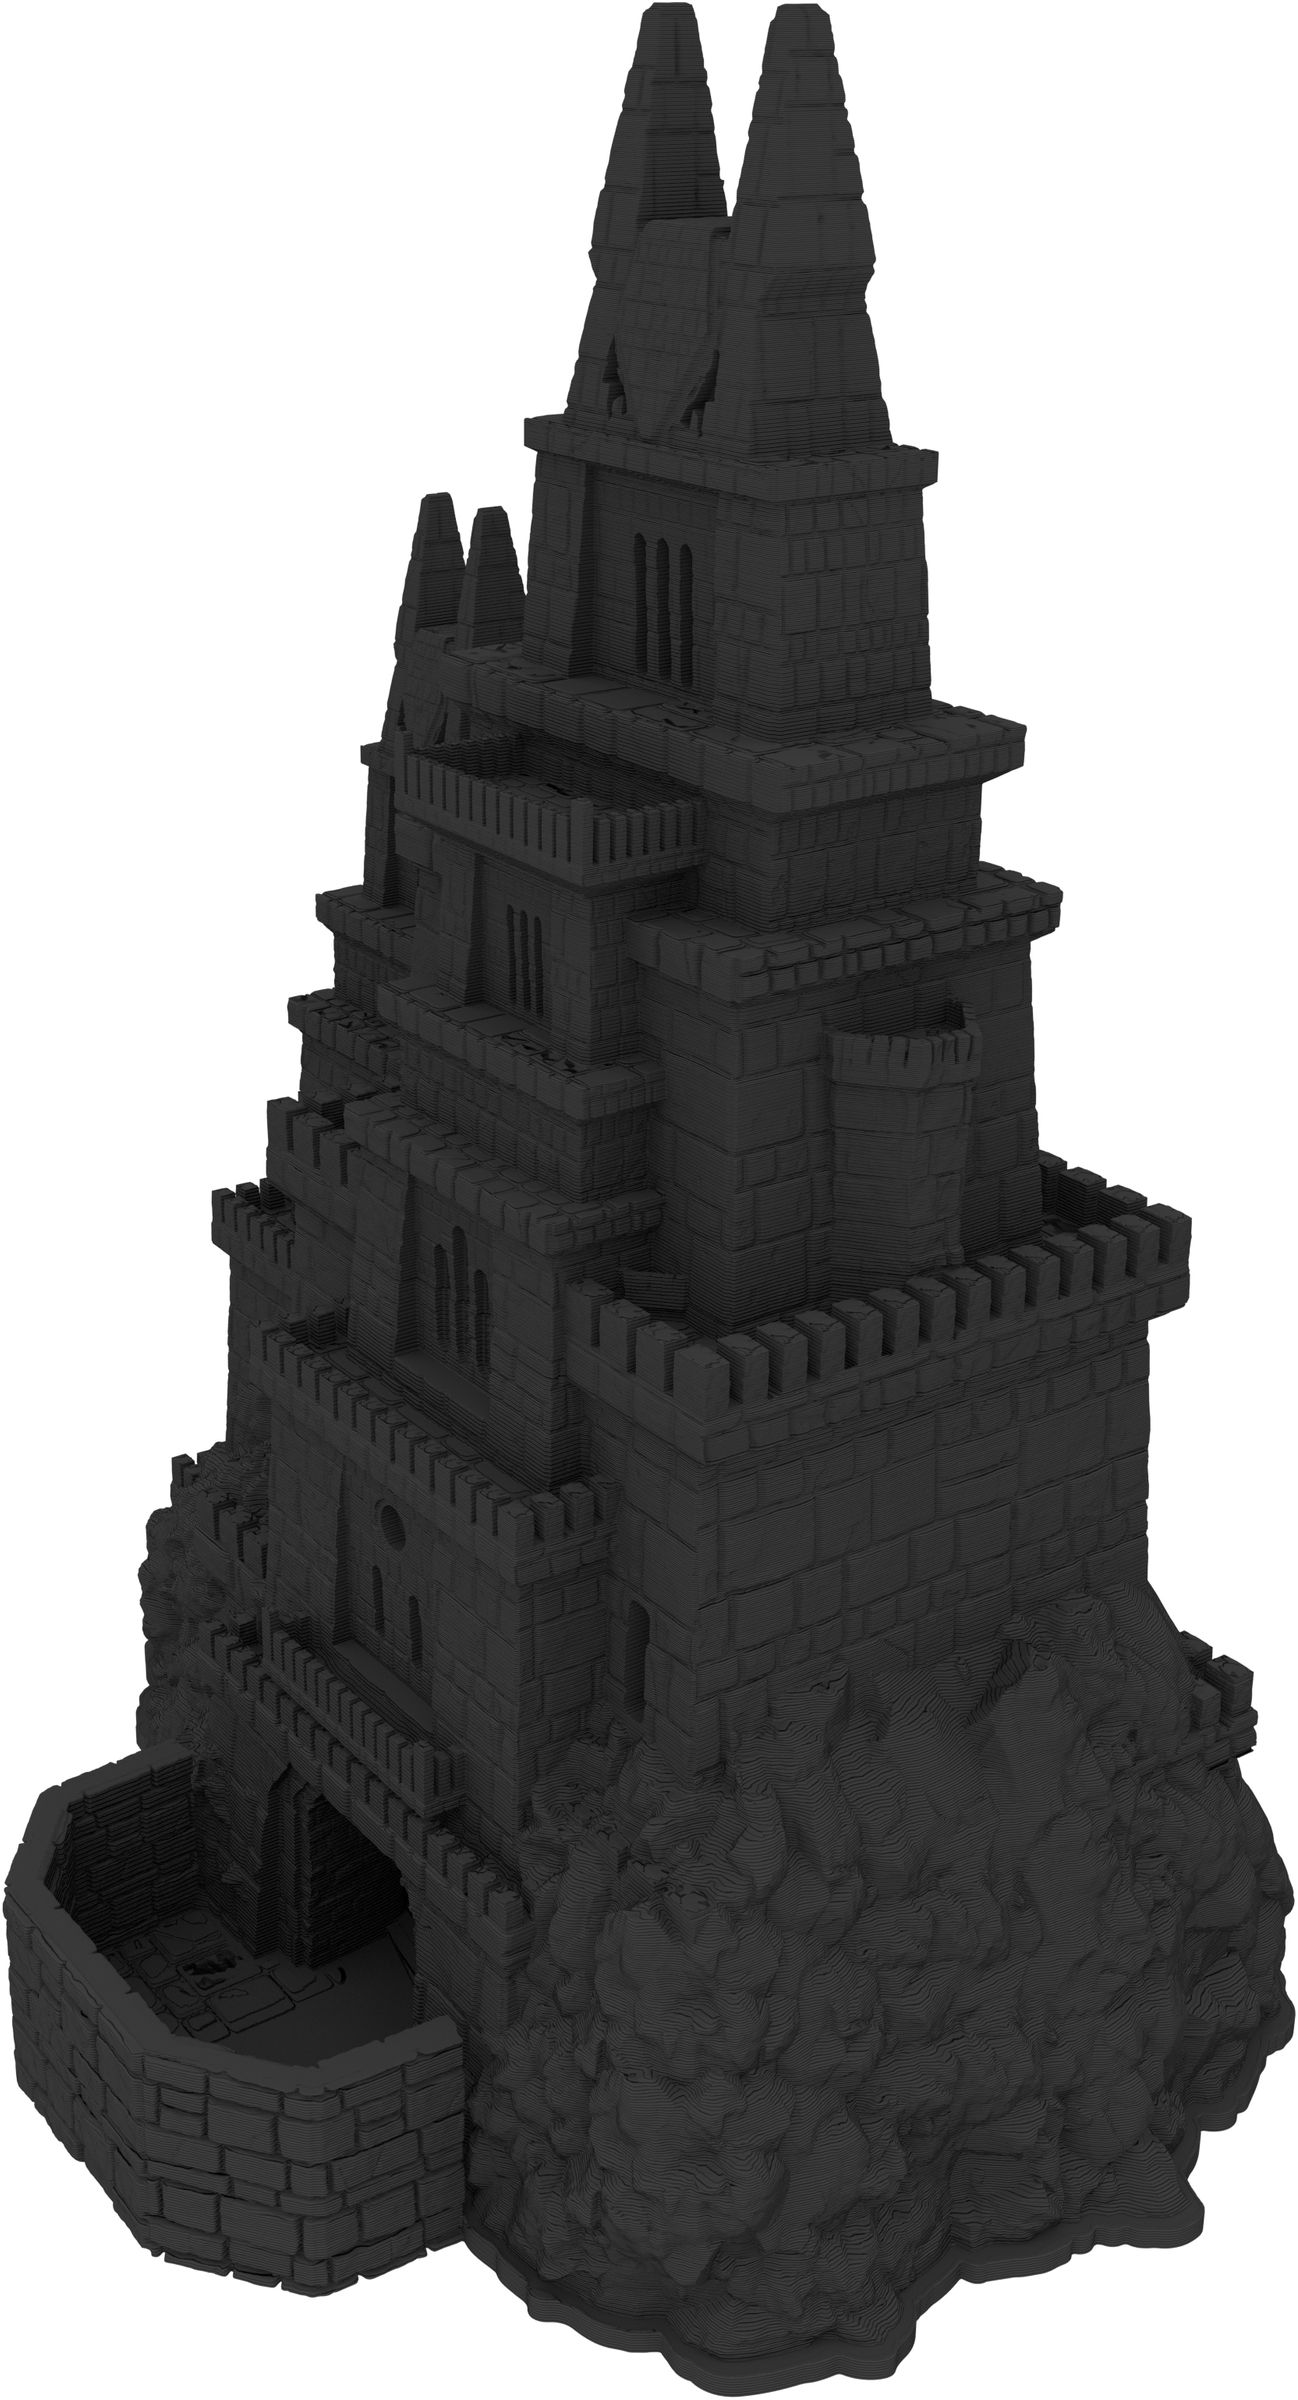 Fates End Dice Tower: Dragonborn